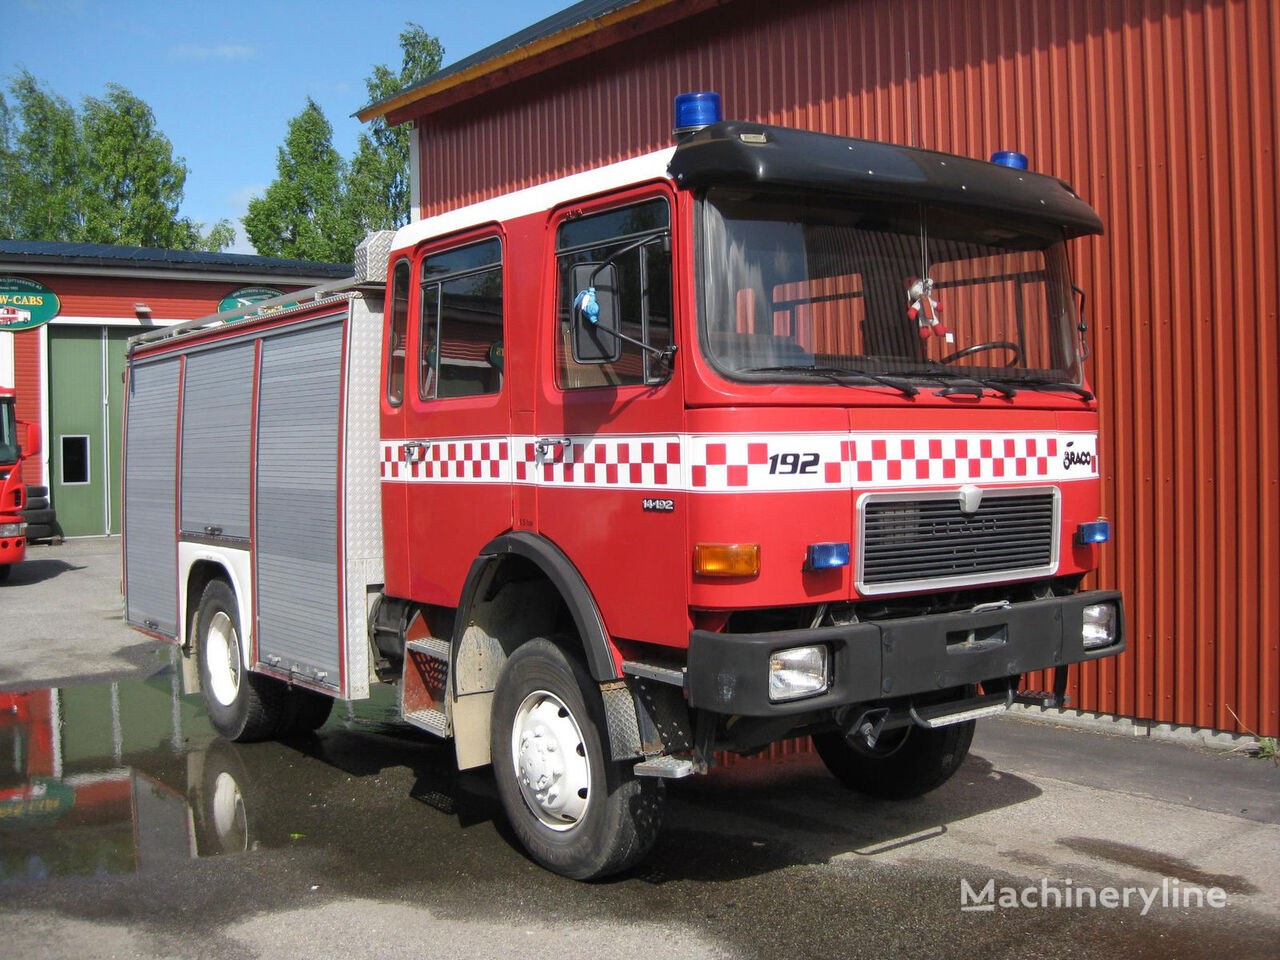 MAN 14-192, 4x4 WD fire truck